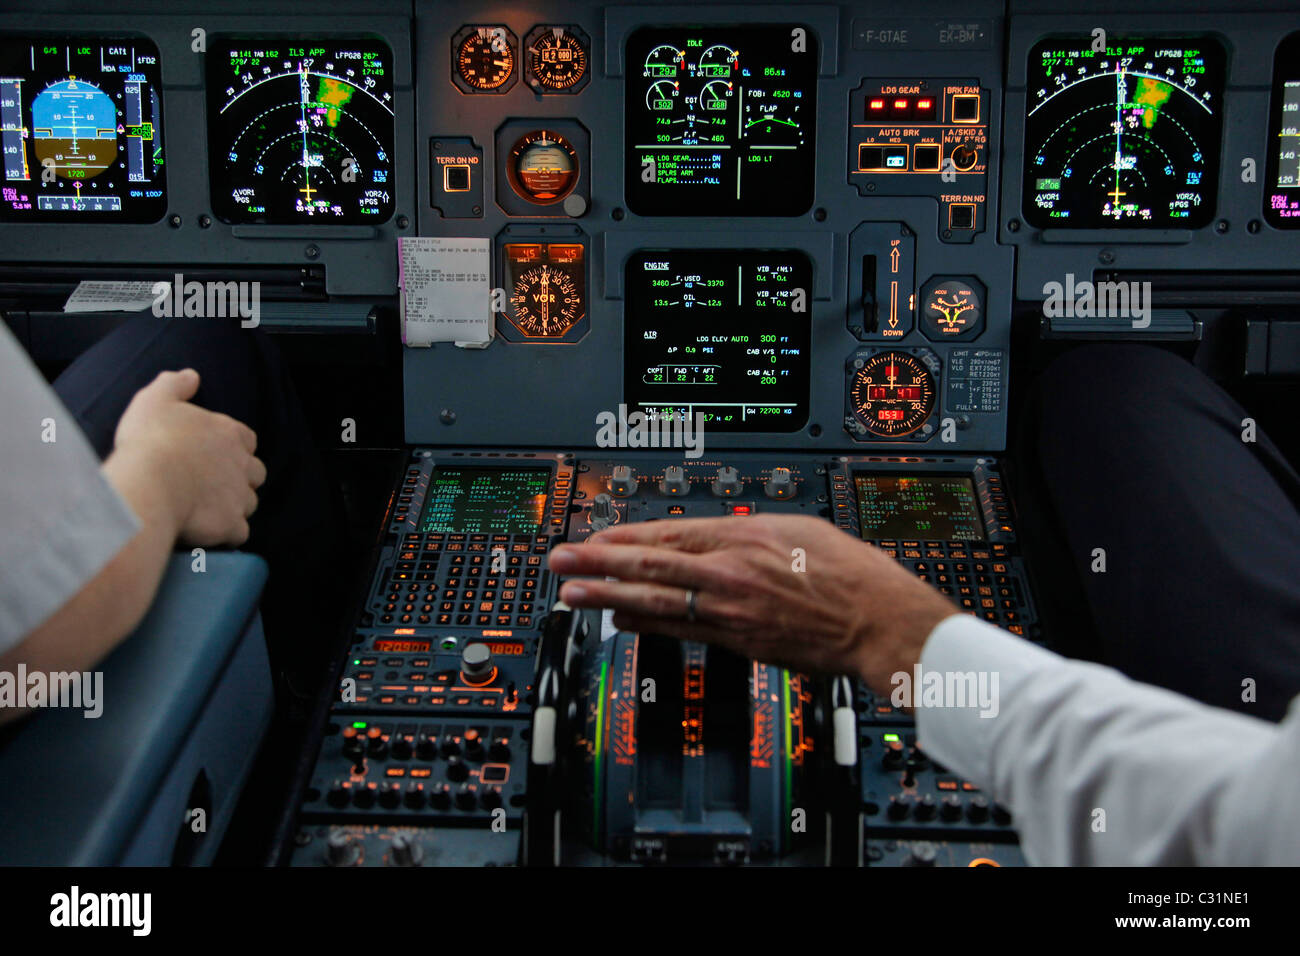 INSTRUMENT PANEL, COCKPIT OF AN AIRBUS A320 ON A PARIS